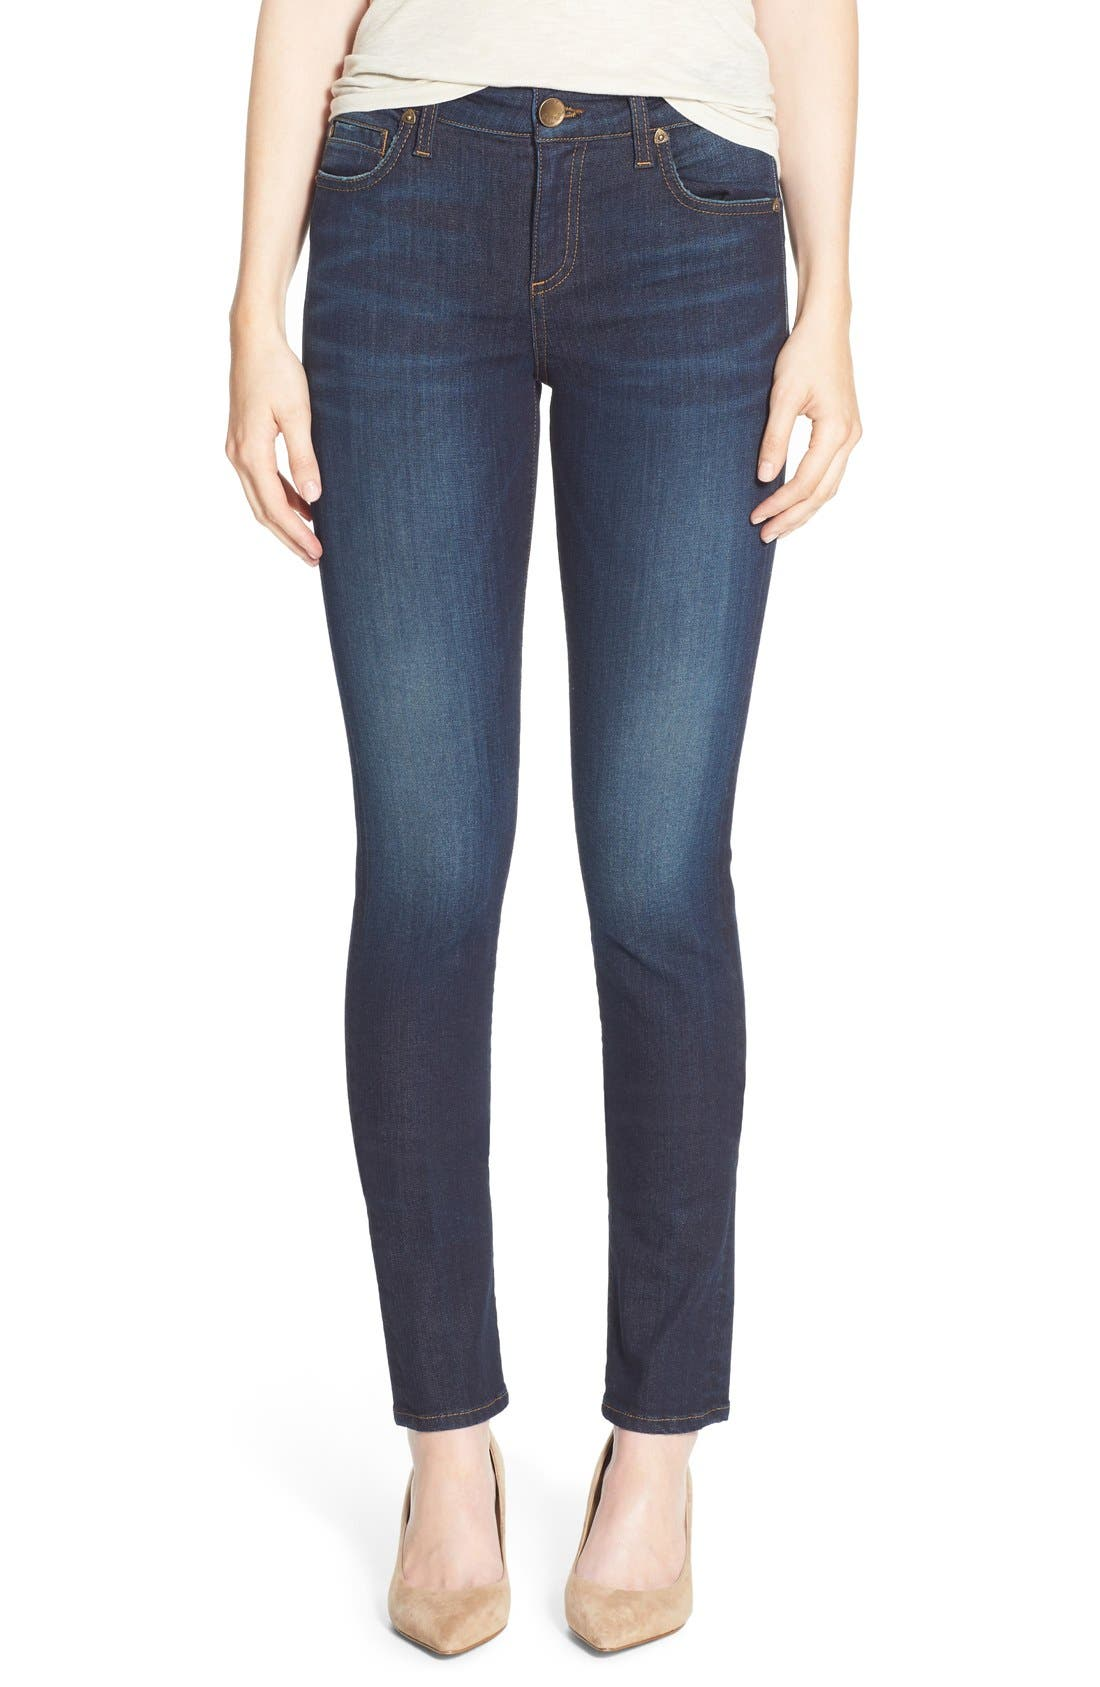 Main Image - KUT from the Kloth 'Diana' Stretch Skinny Jeans (Blinding) (Regular & Petite)